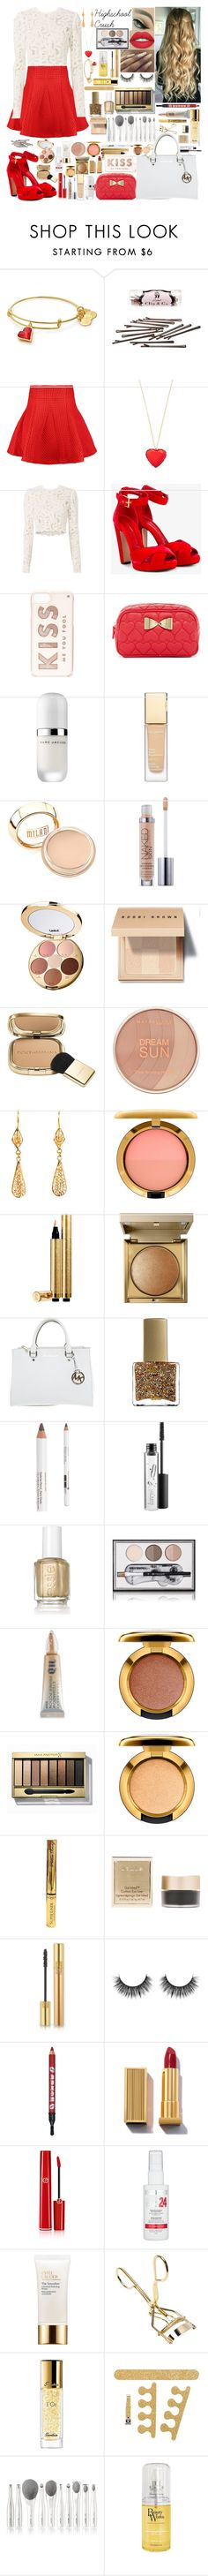 """Highschool Crush"" by girlygirlprincess ❤ liked on Polyvore featuring L. Erickson, Maje, Kate Spade, A.L.C., Alexander McQueen, Betsey Johnson, Marc Jacobs, Clarins, Urban Decay and tarte"